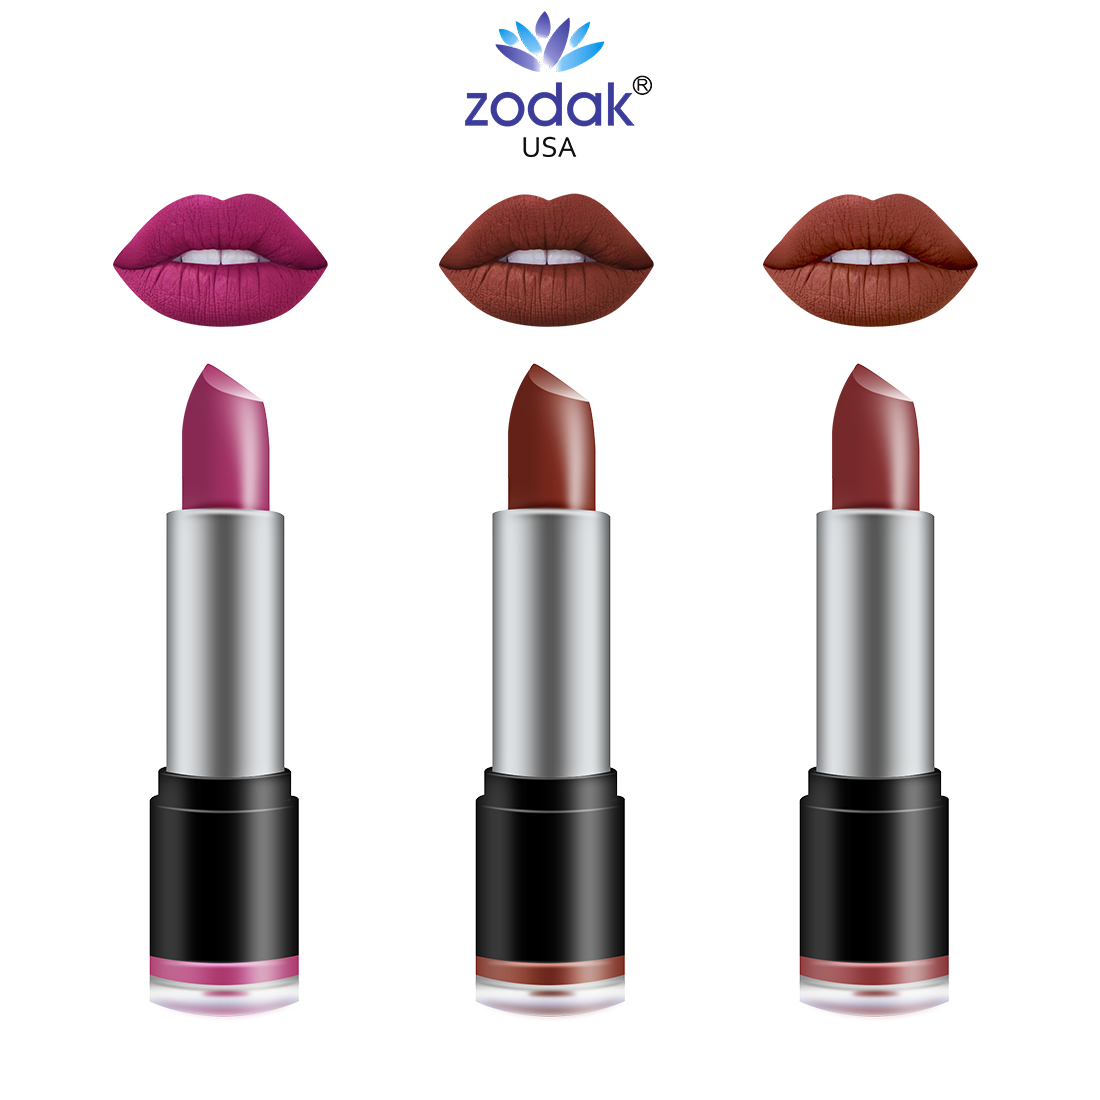 ZODAK Retro - Matte Lipstick pack of 3 (Tomorrow, Ehel, Beuty, 38 g)